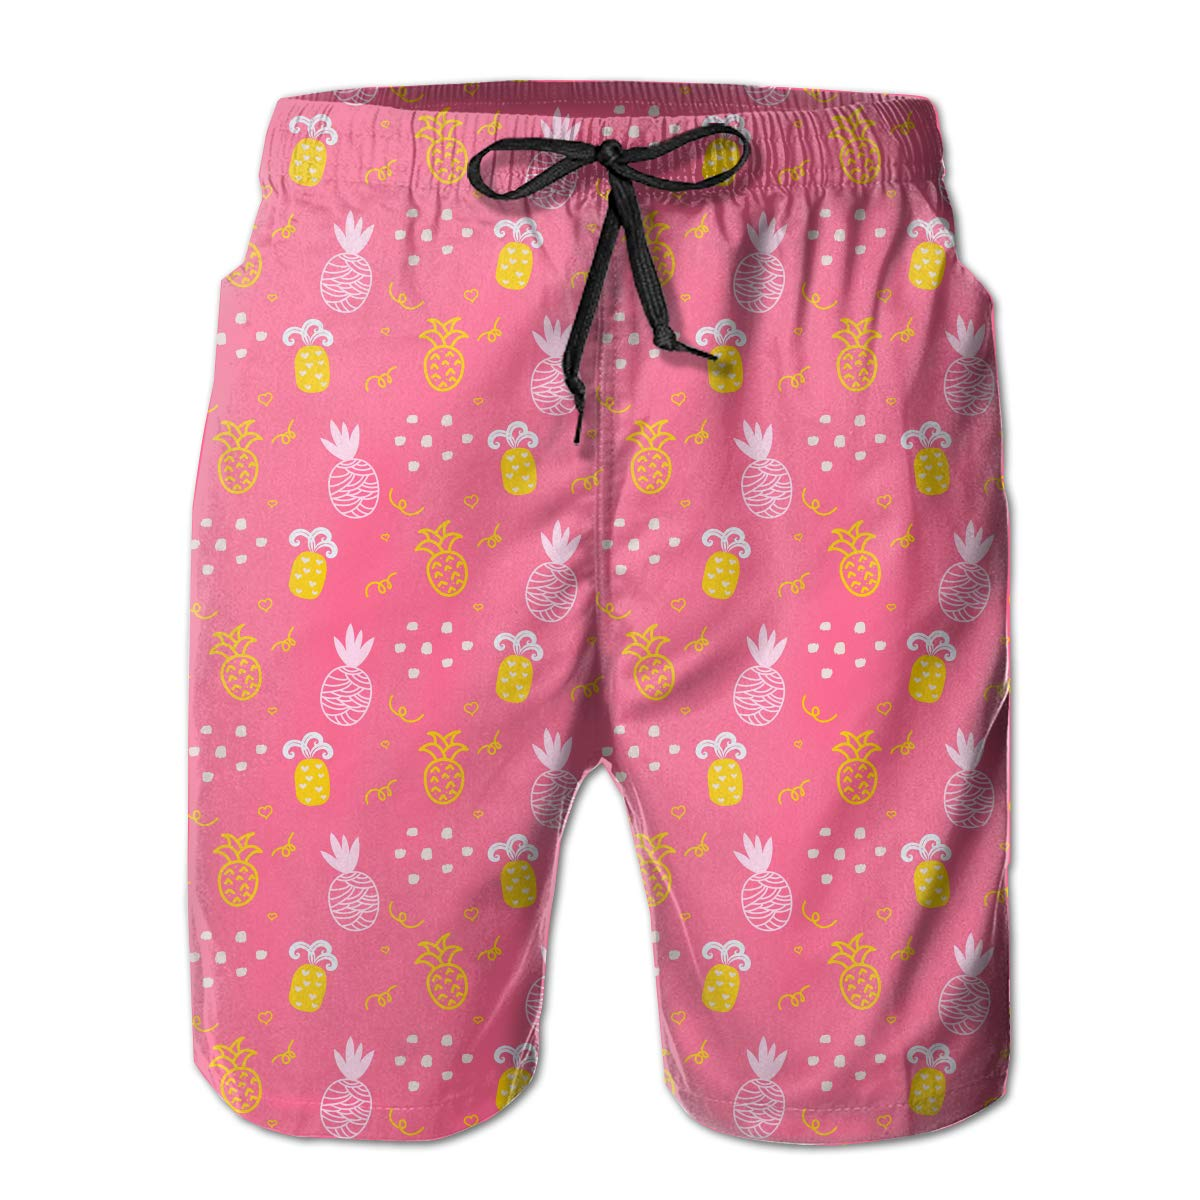 APPCLL Fashion Swim Trunks Mens Board Shorts Cute Girls Pineapple Pink Quick Dry Shorts